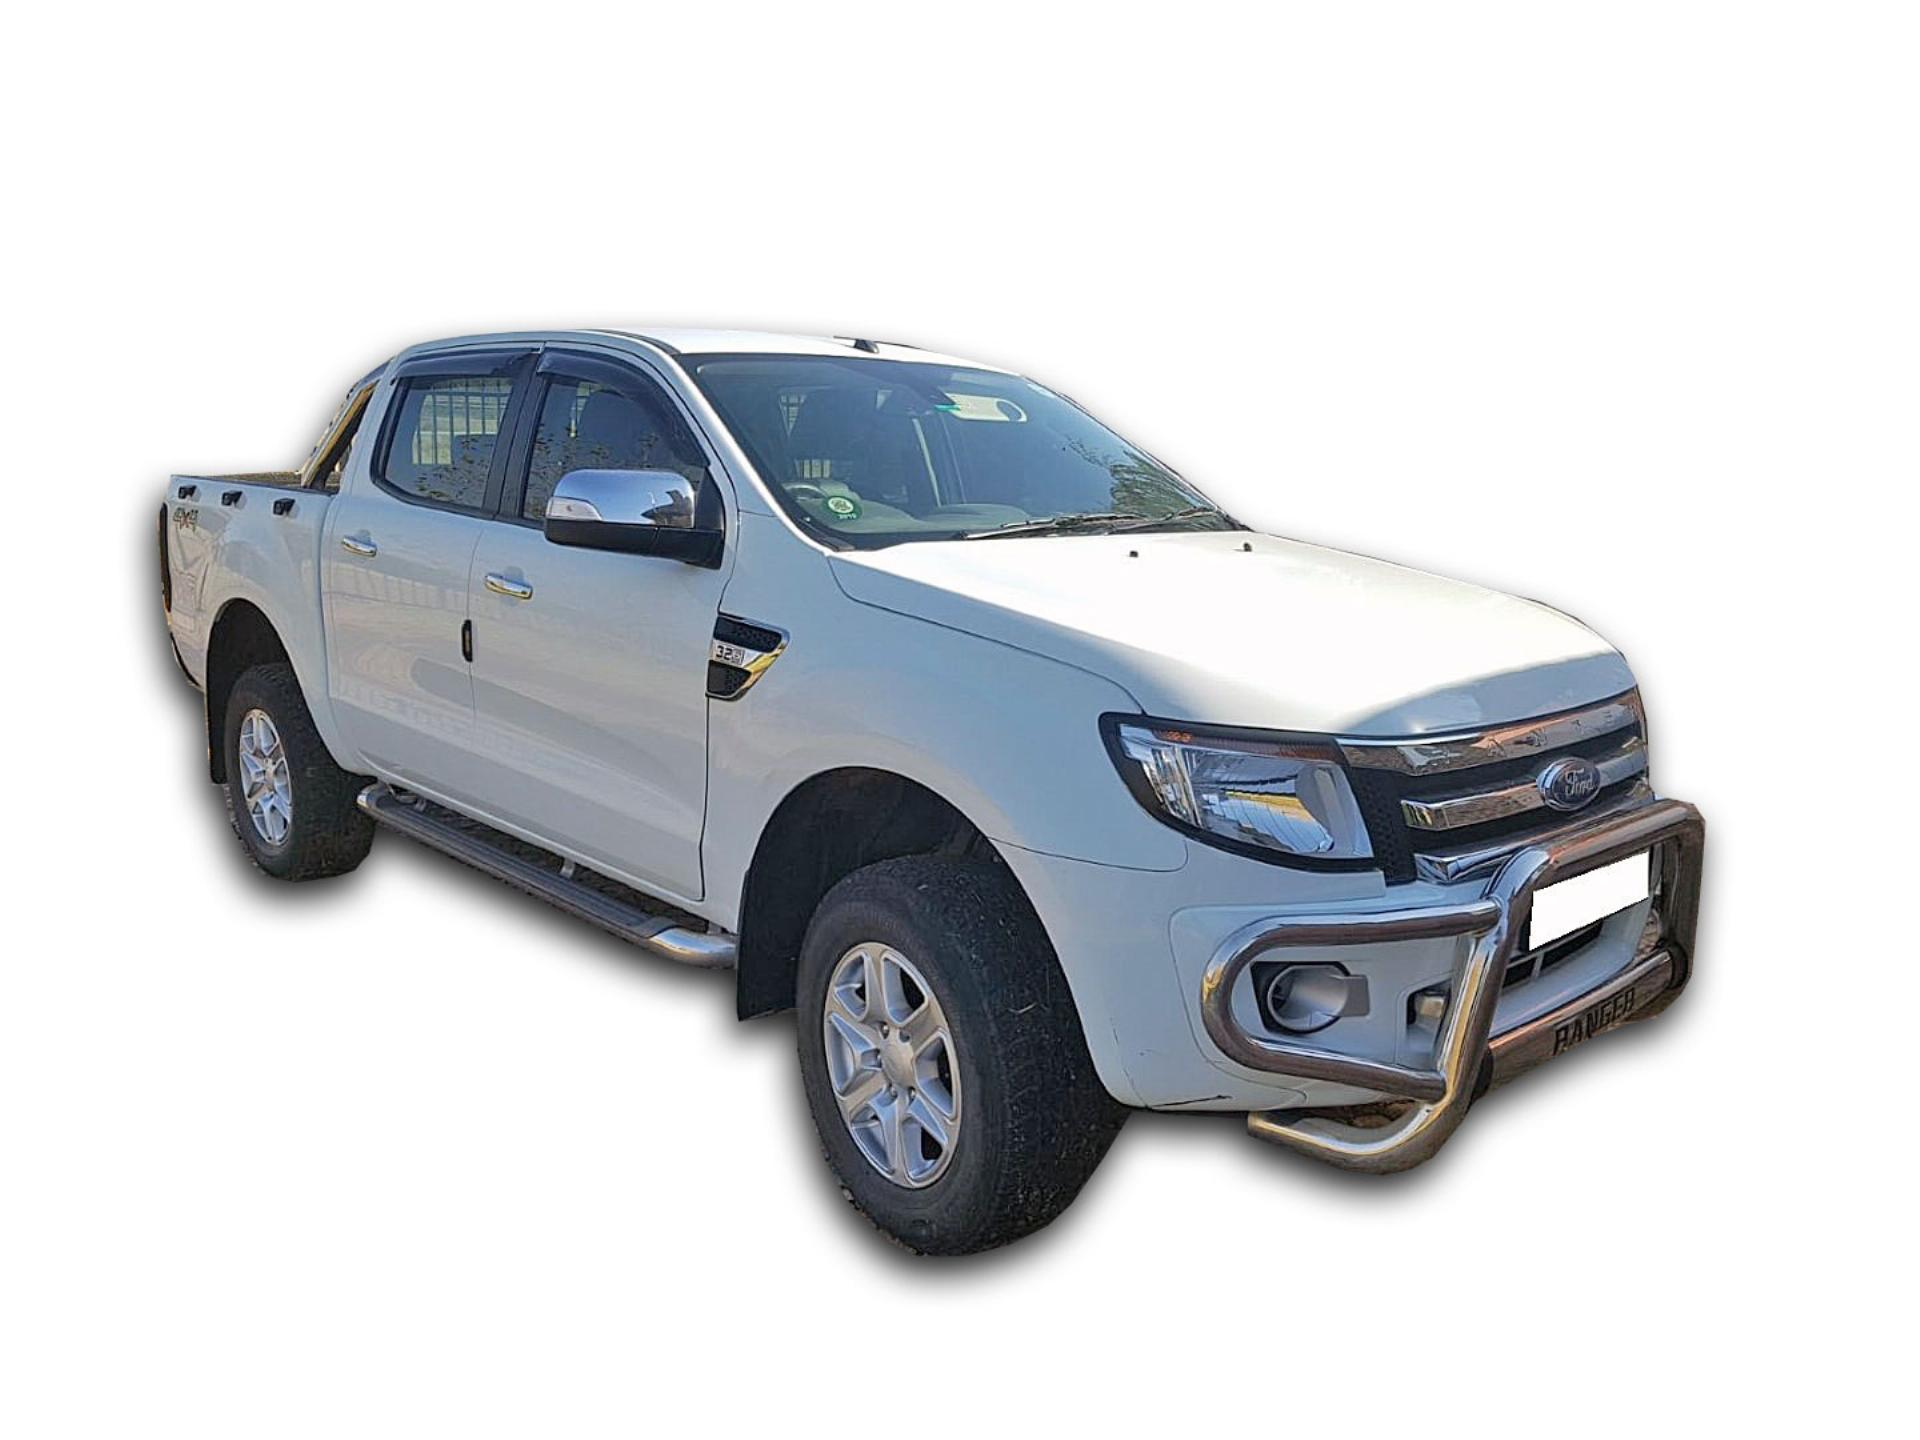 Ford Ranger XLT 3.2 Double Cab 4WD